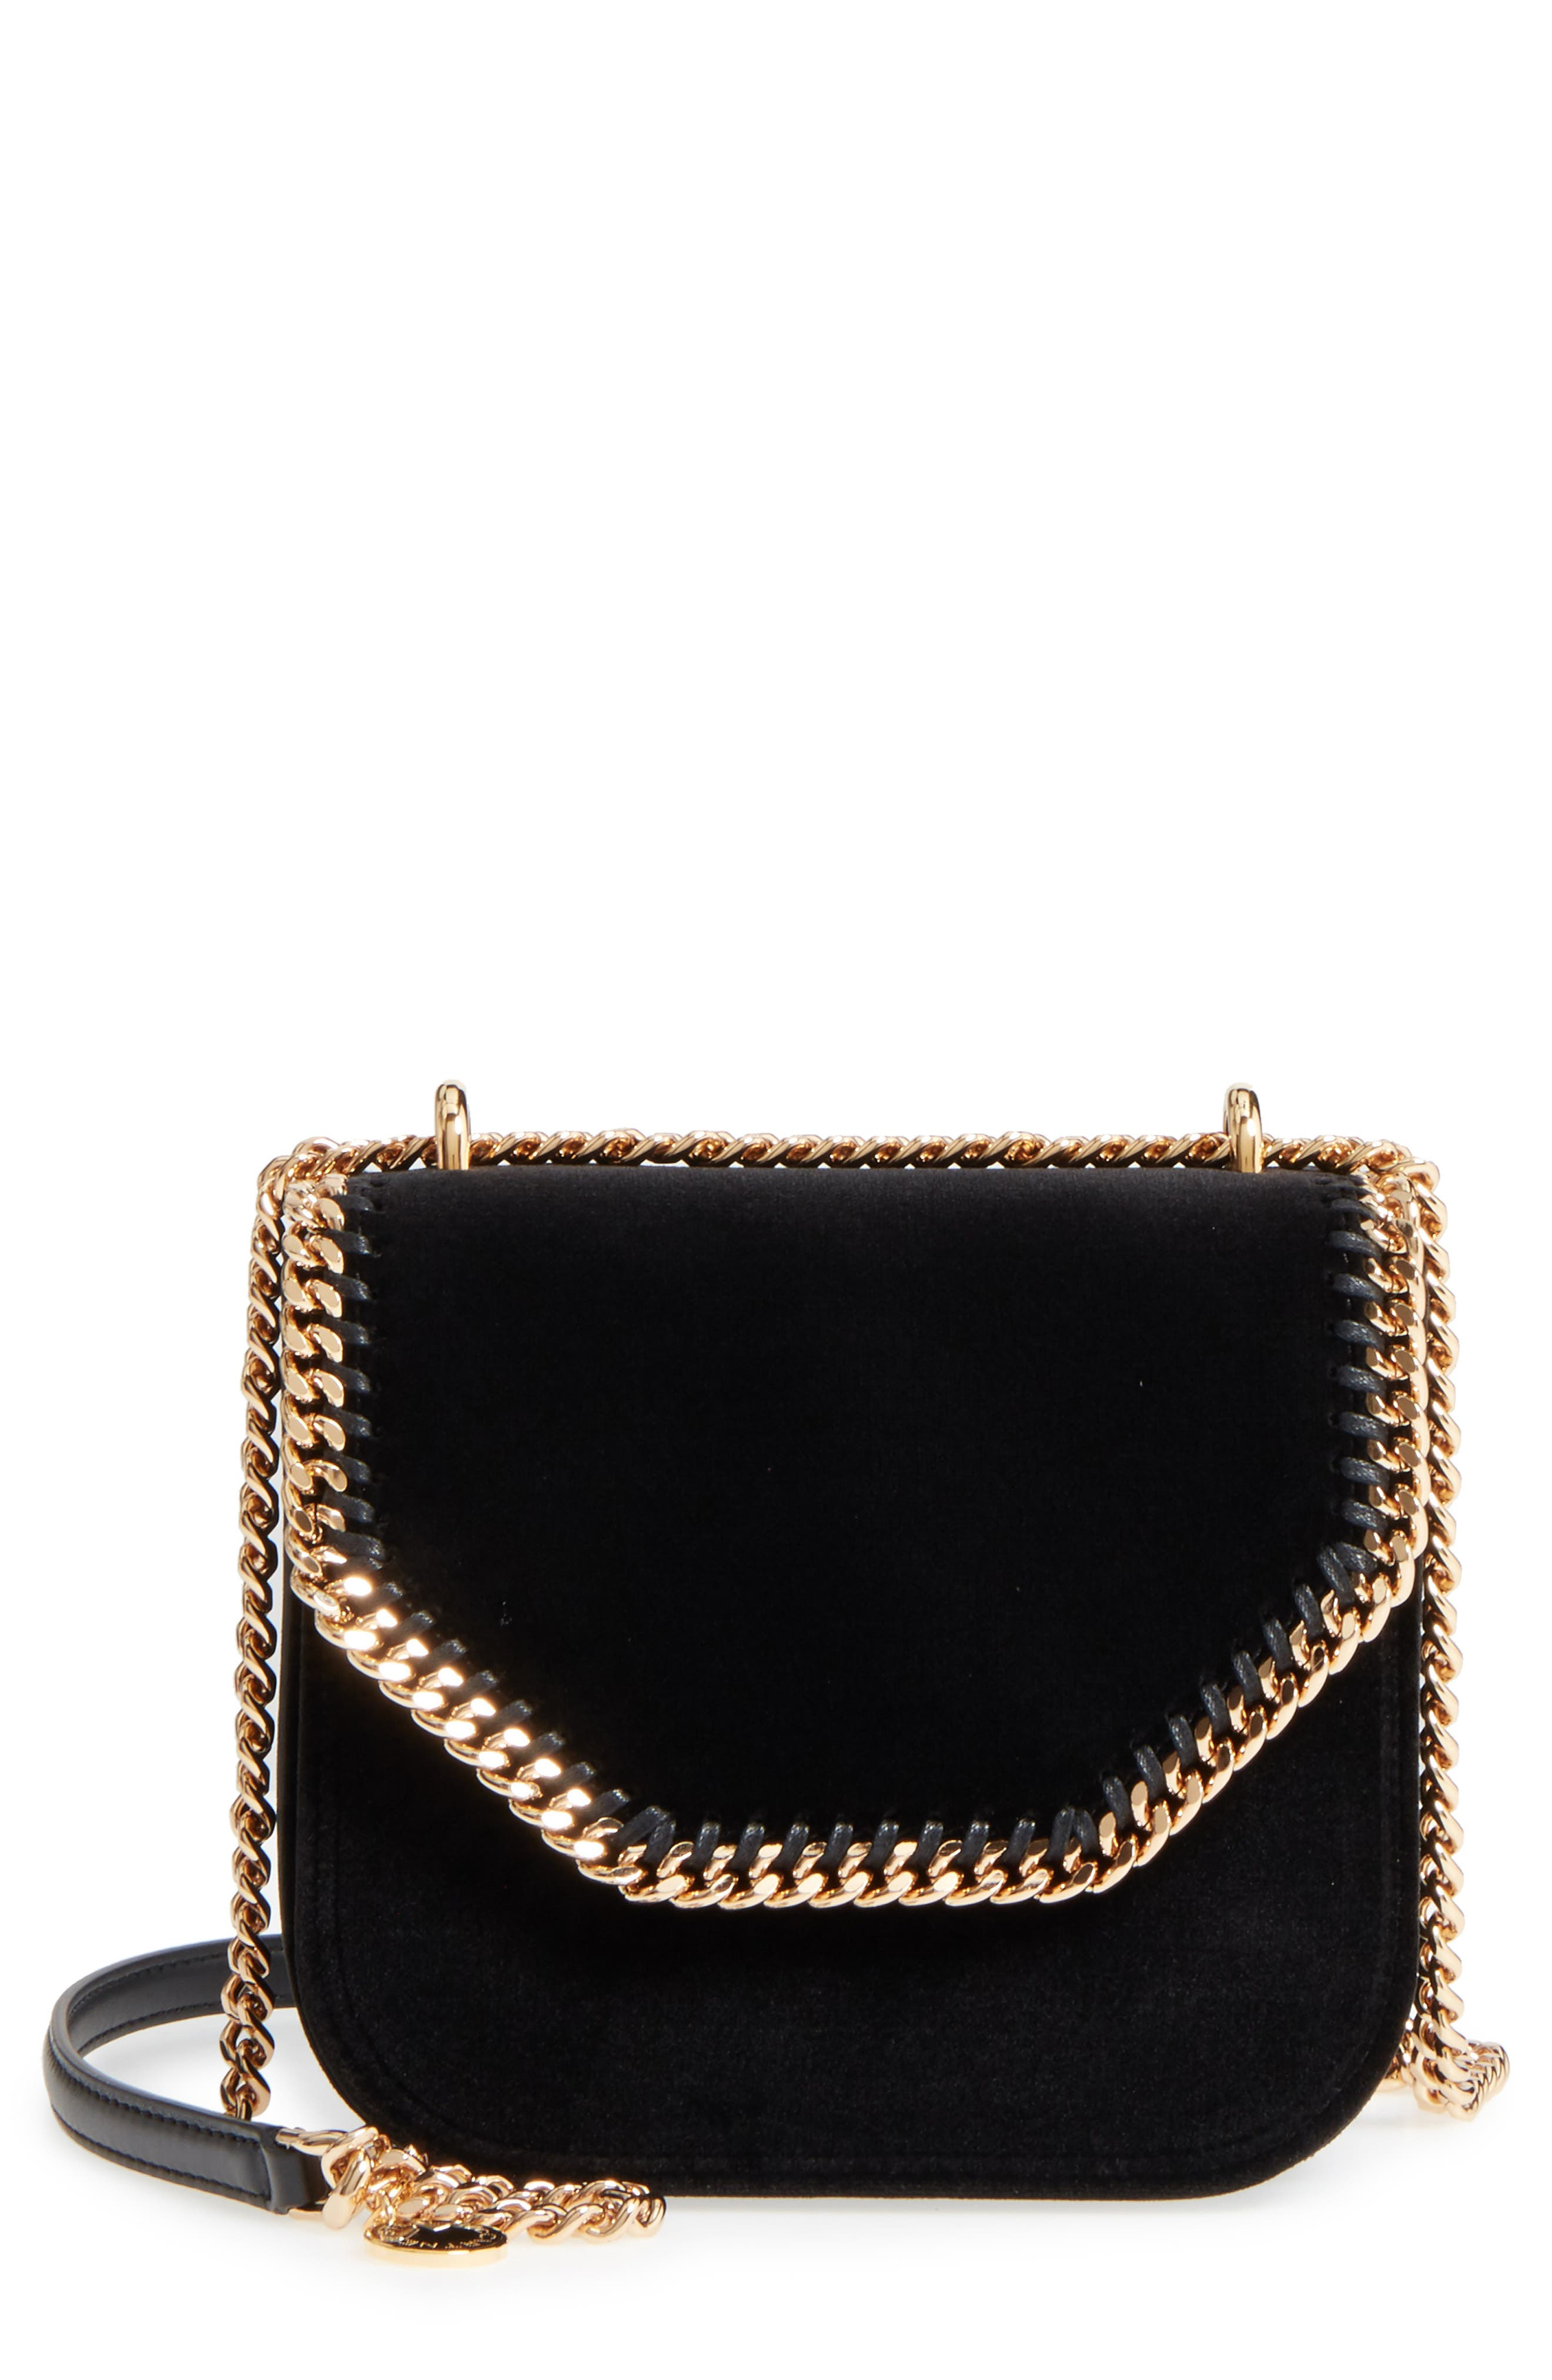 Main Image - Stella McCartney Mini Falabella Box Velvet Shoulder Bag